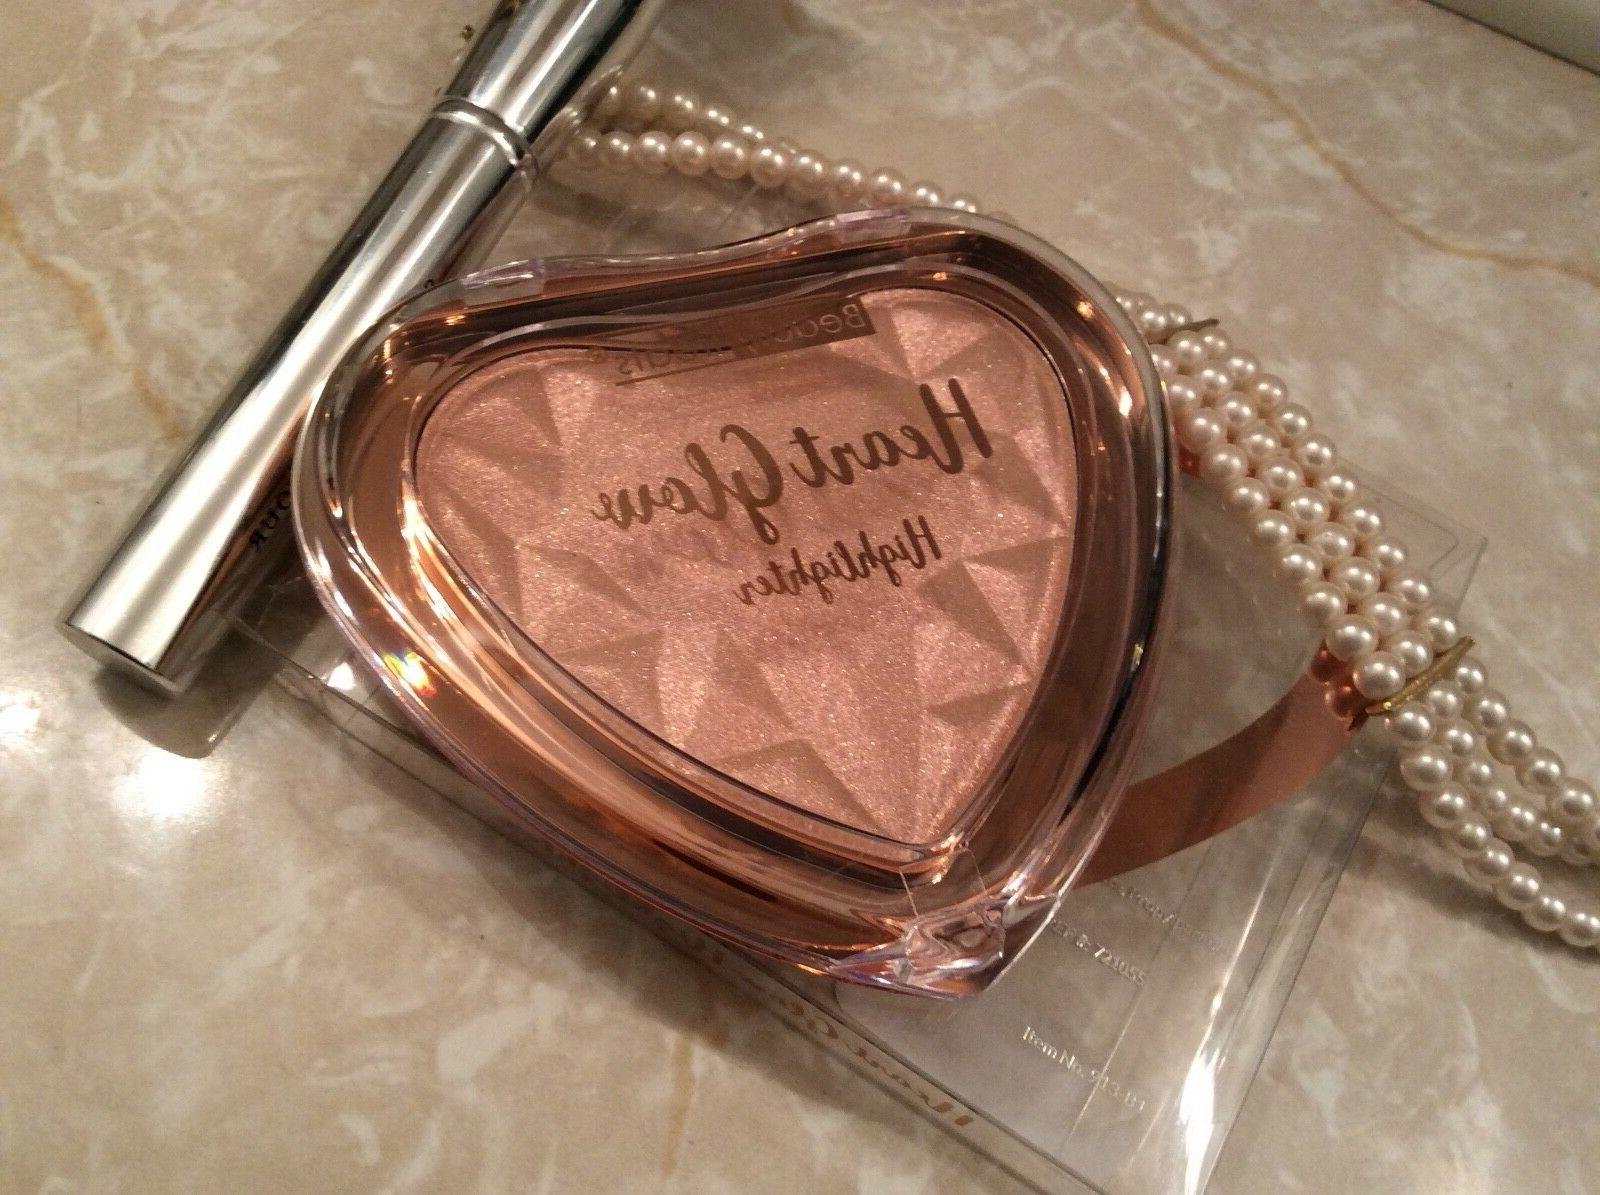 heart highlighter pigmented highlighter powders for face